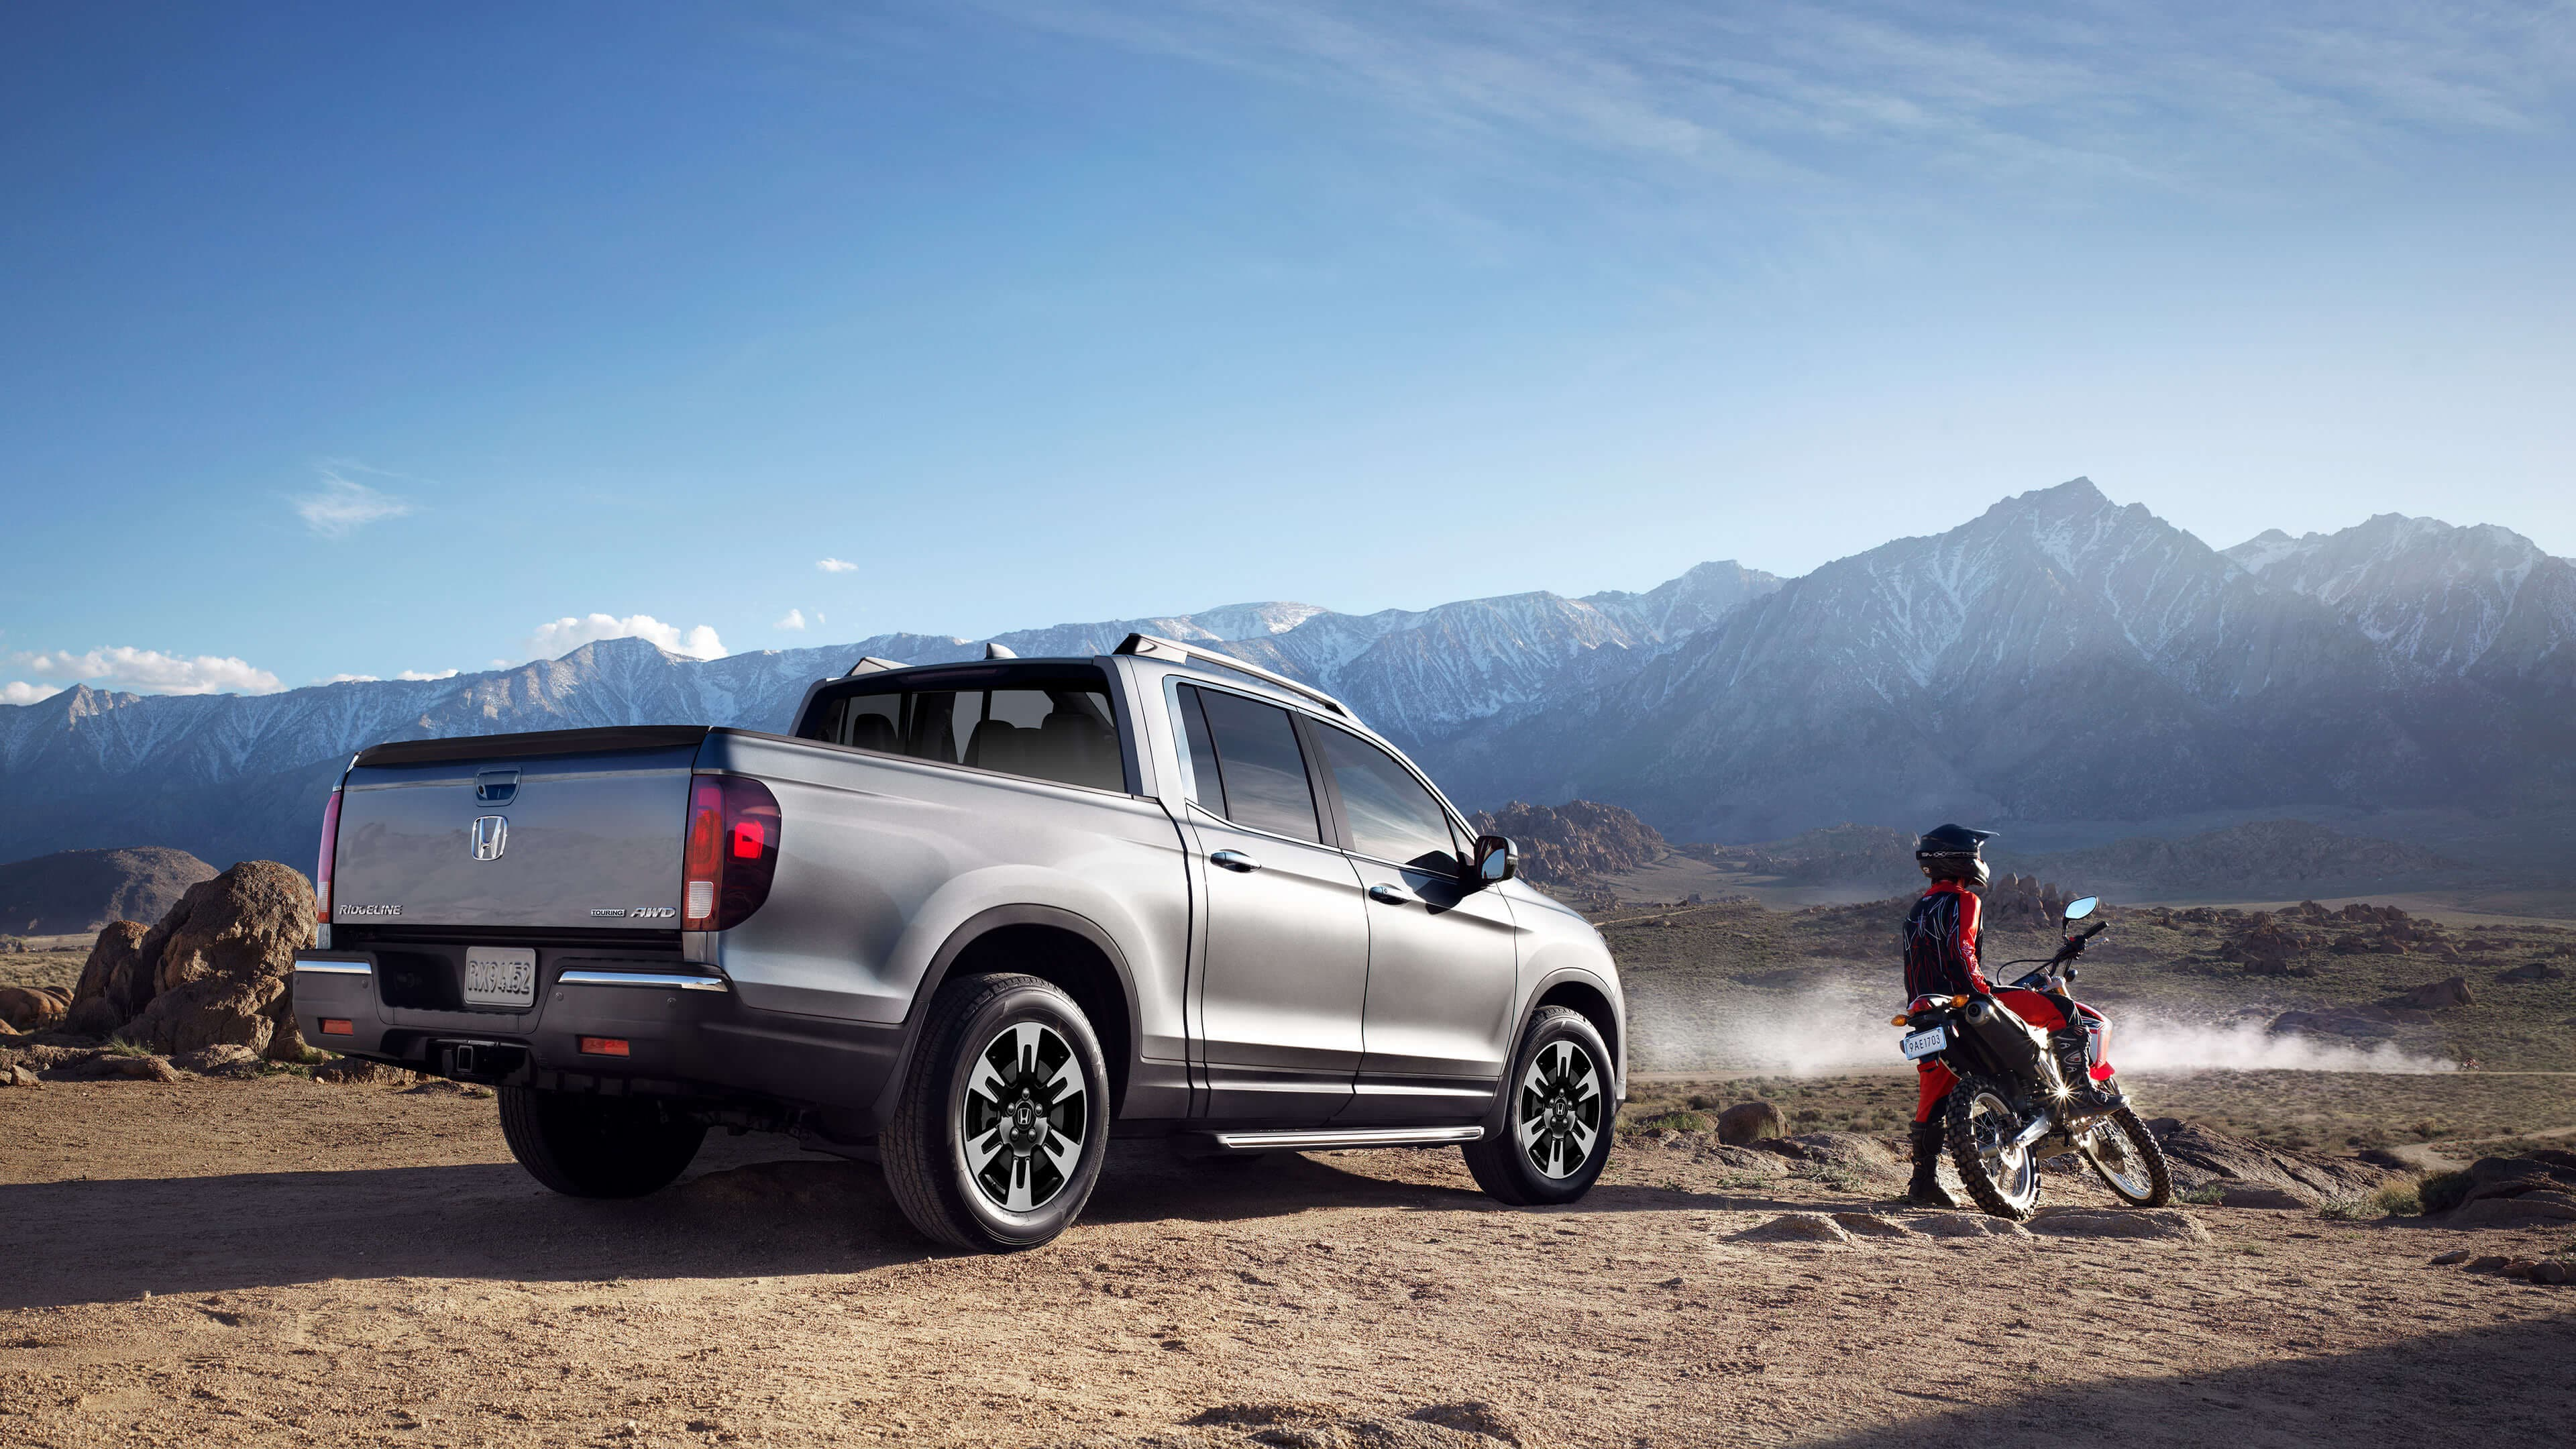 2020 Honda Ridgeline parked in front of the mountains with a dirtbiker right beside it